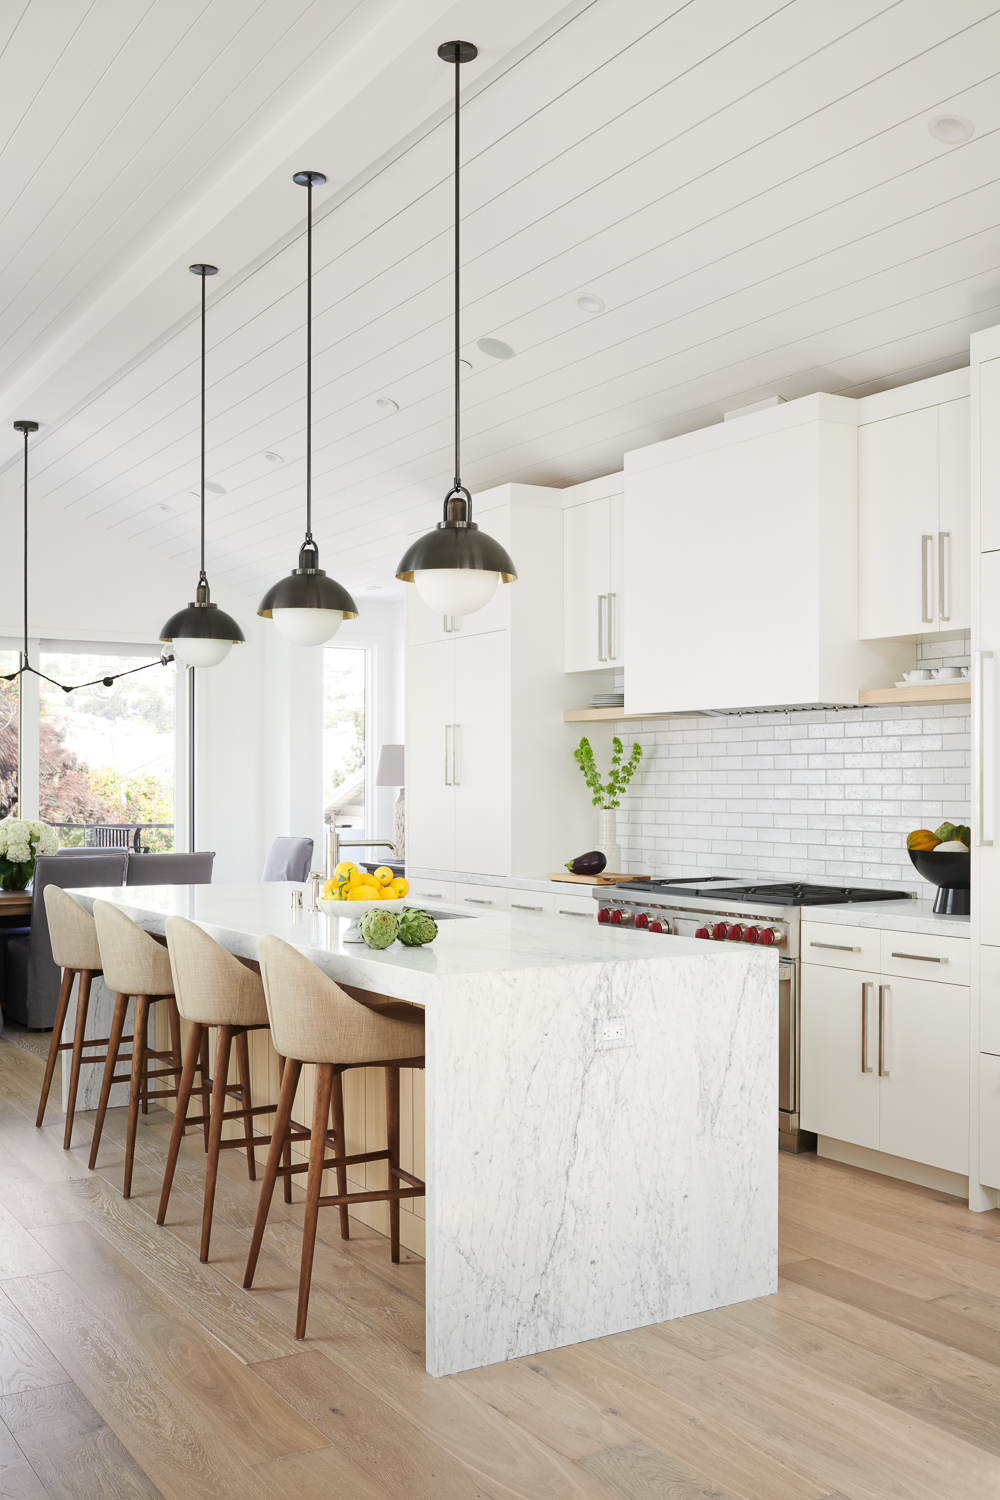 Bright kitchen with marble waterfall island, pendants, and barstools by Holly A. Kopman Interior Design